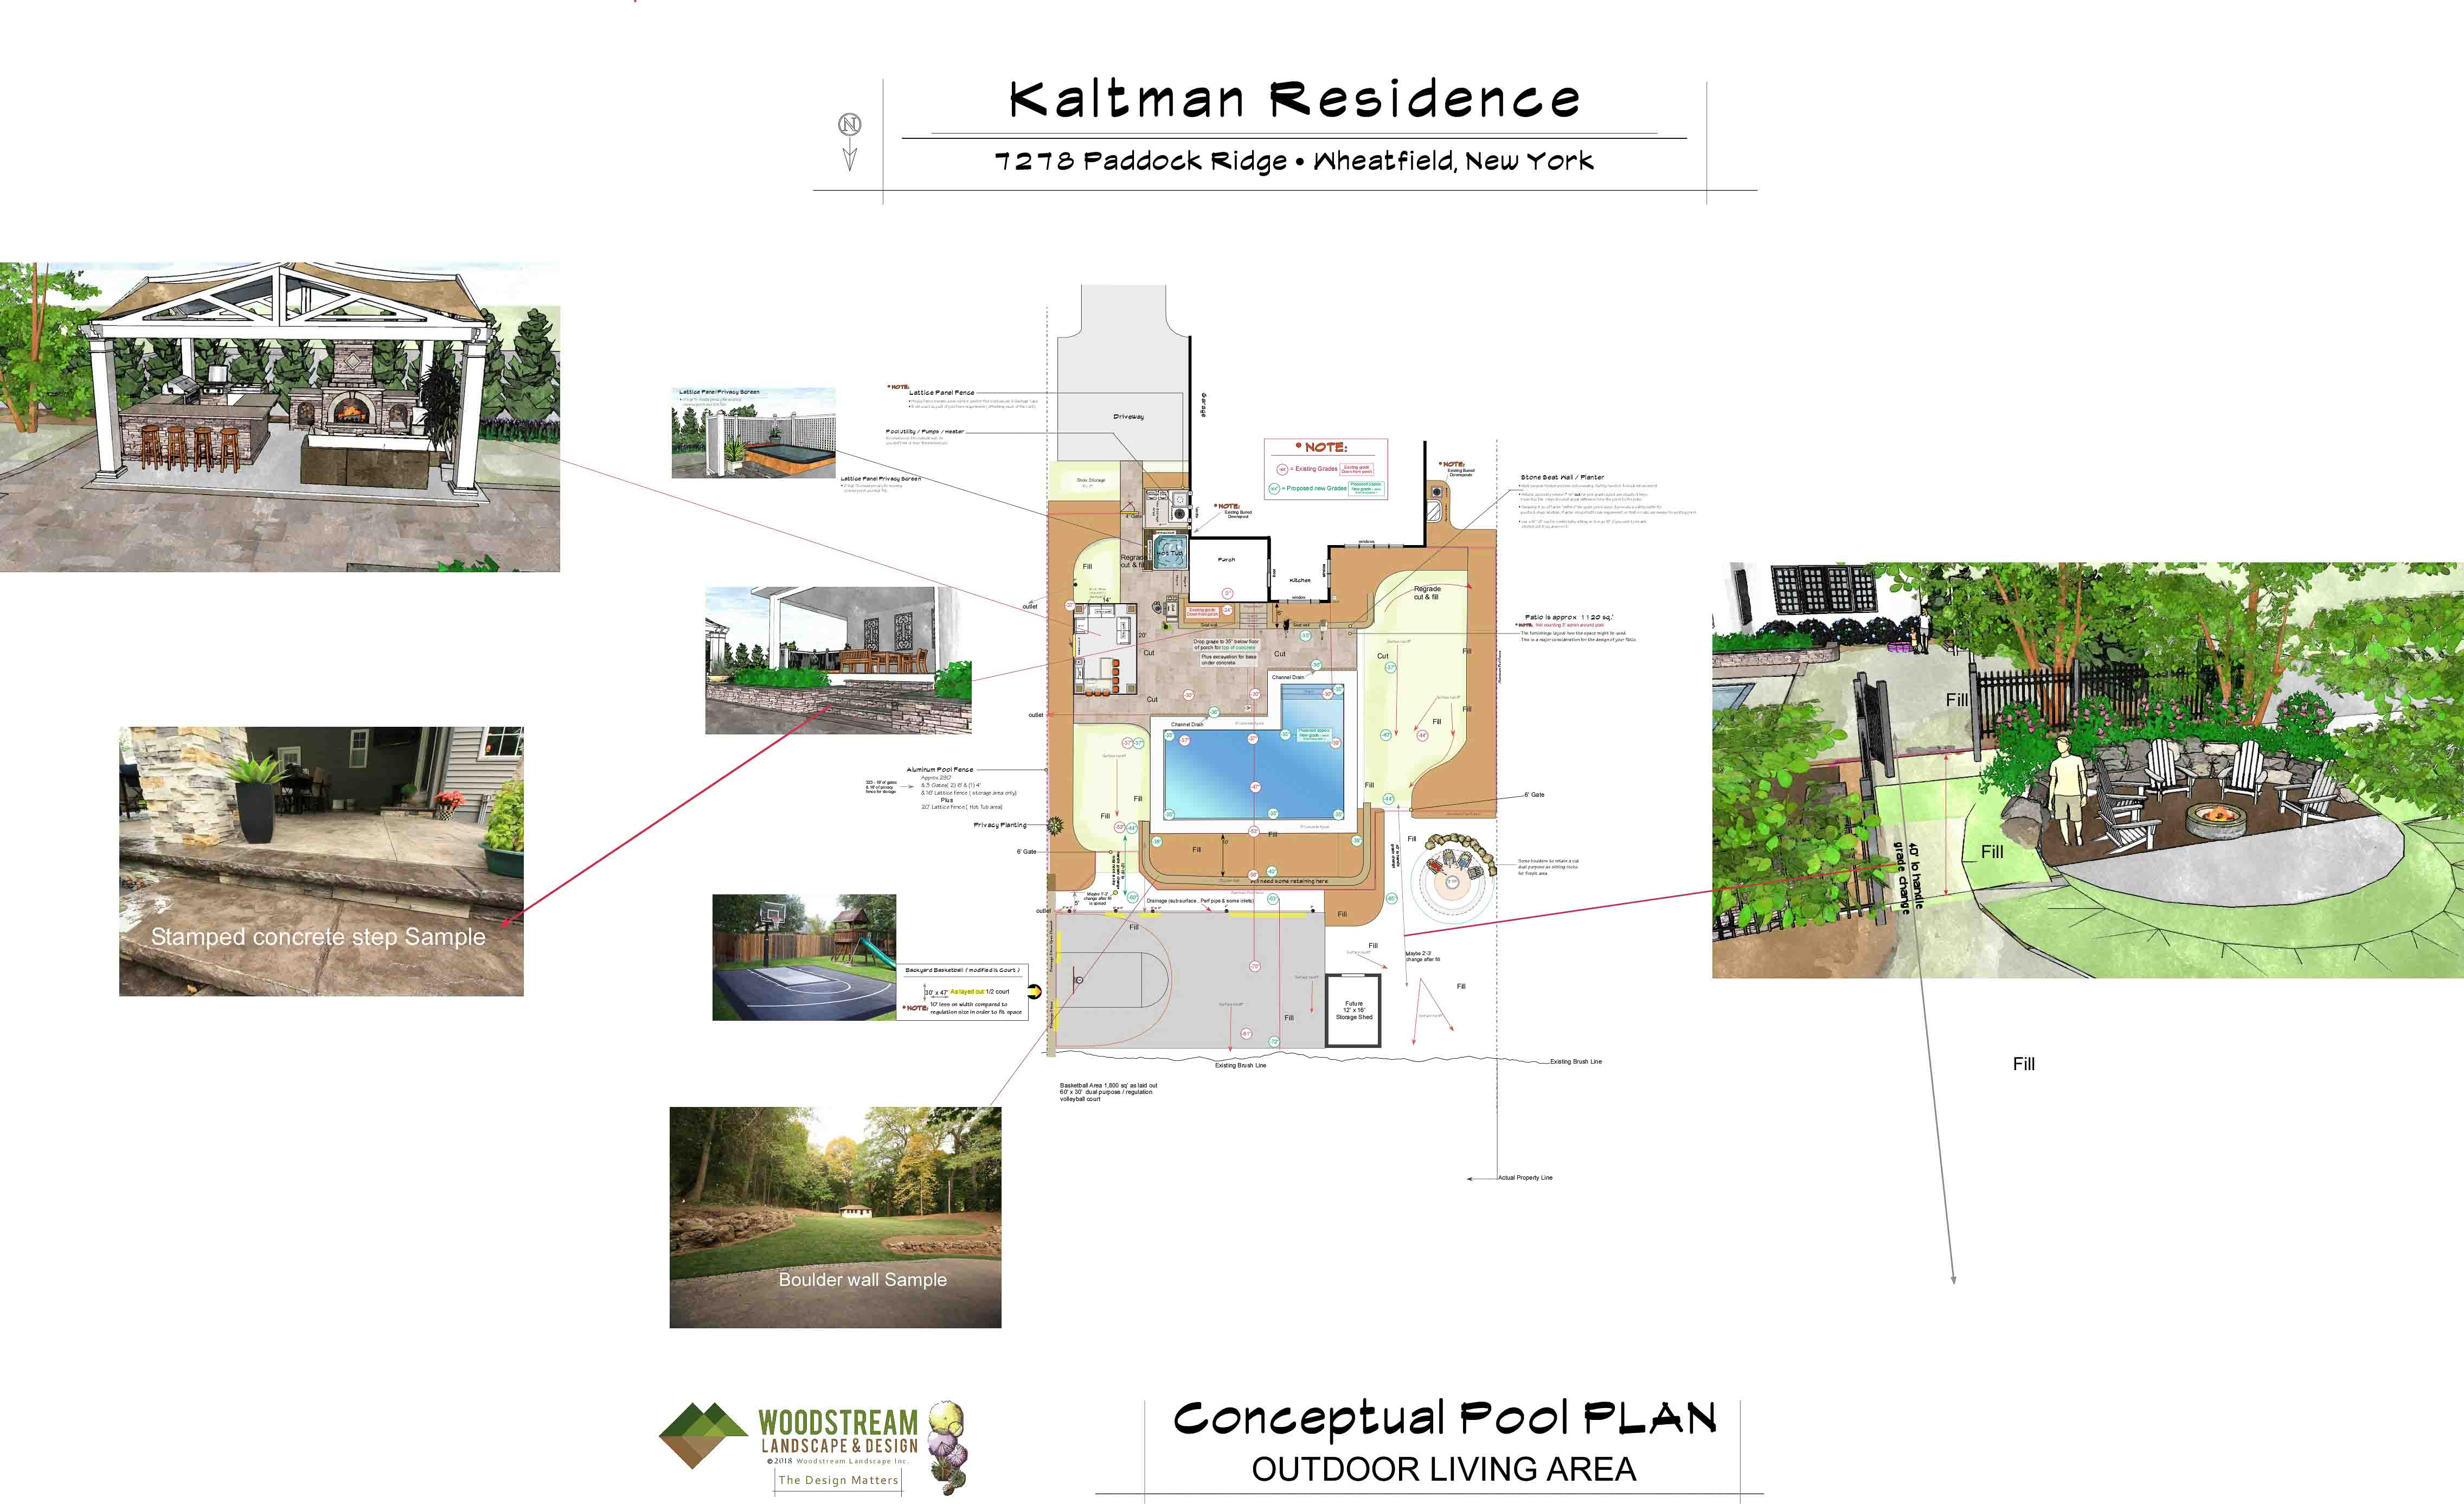 Inground Pool Design Rochester NY | Woodstream Pool Design